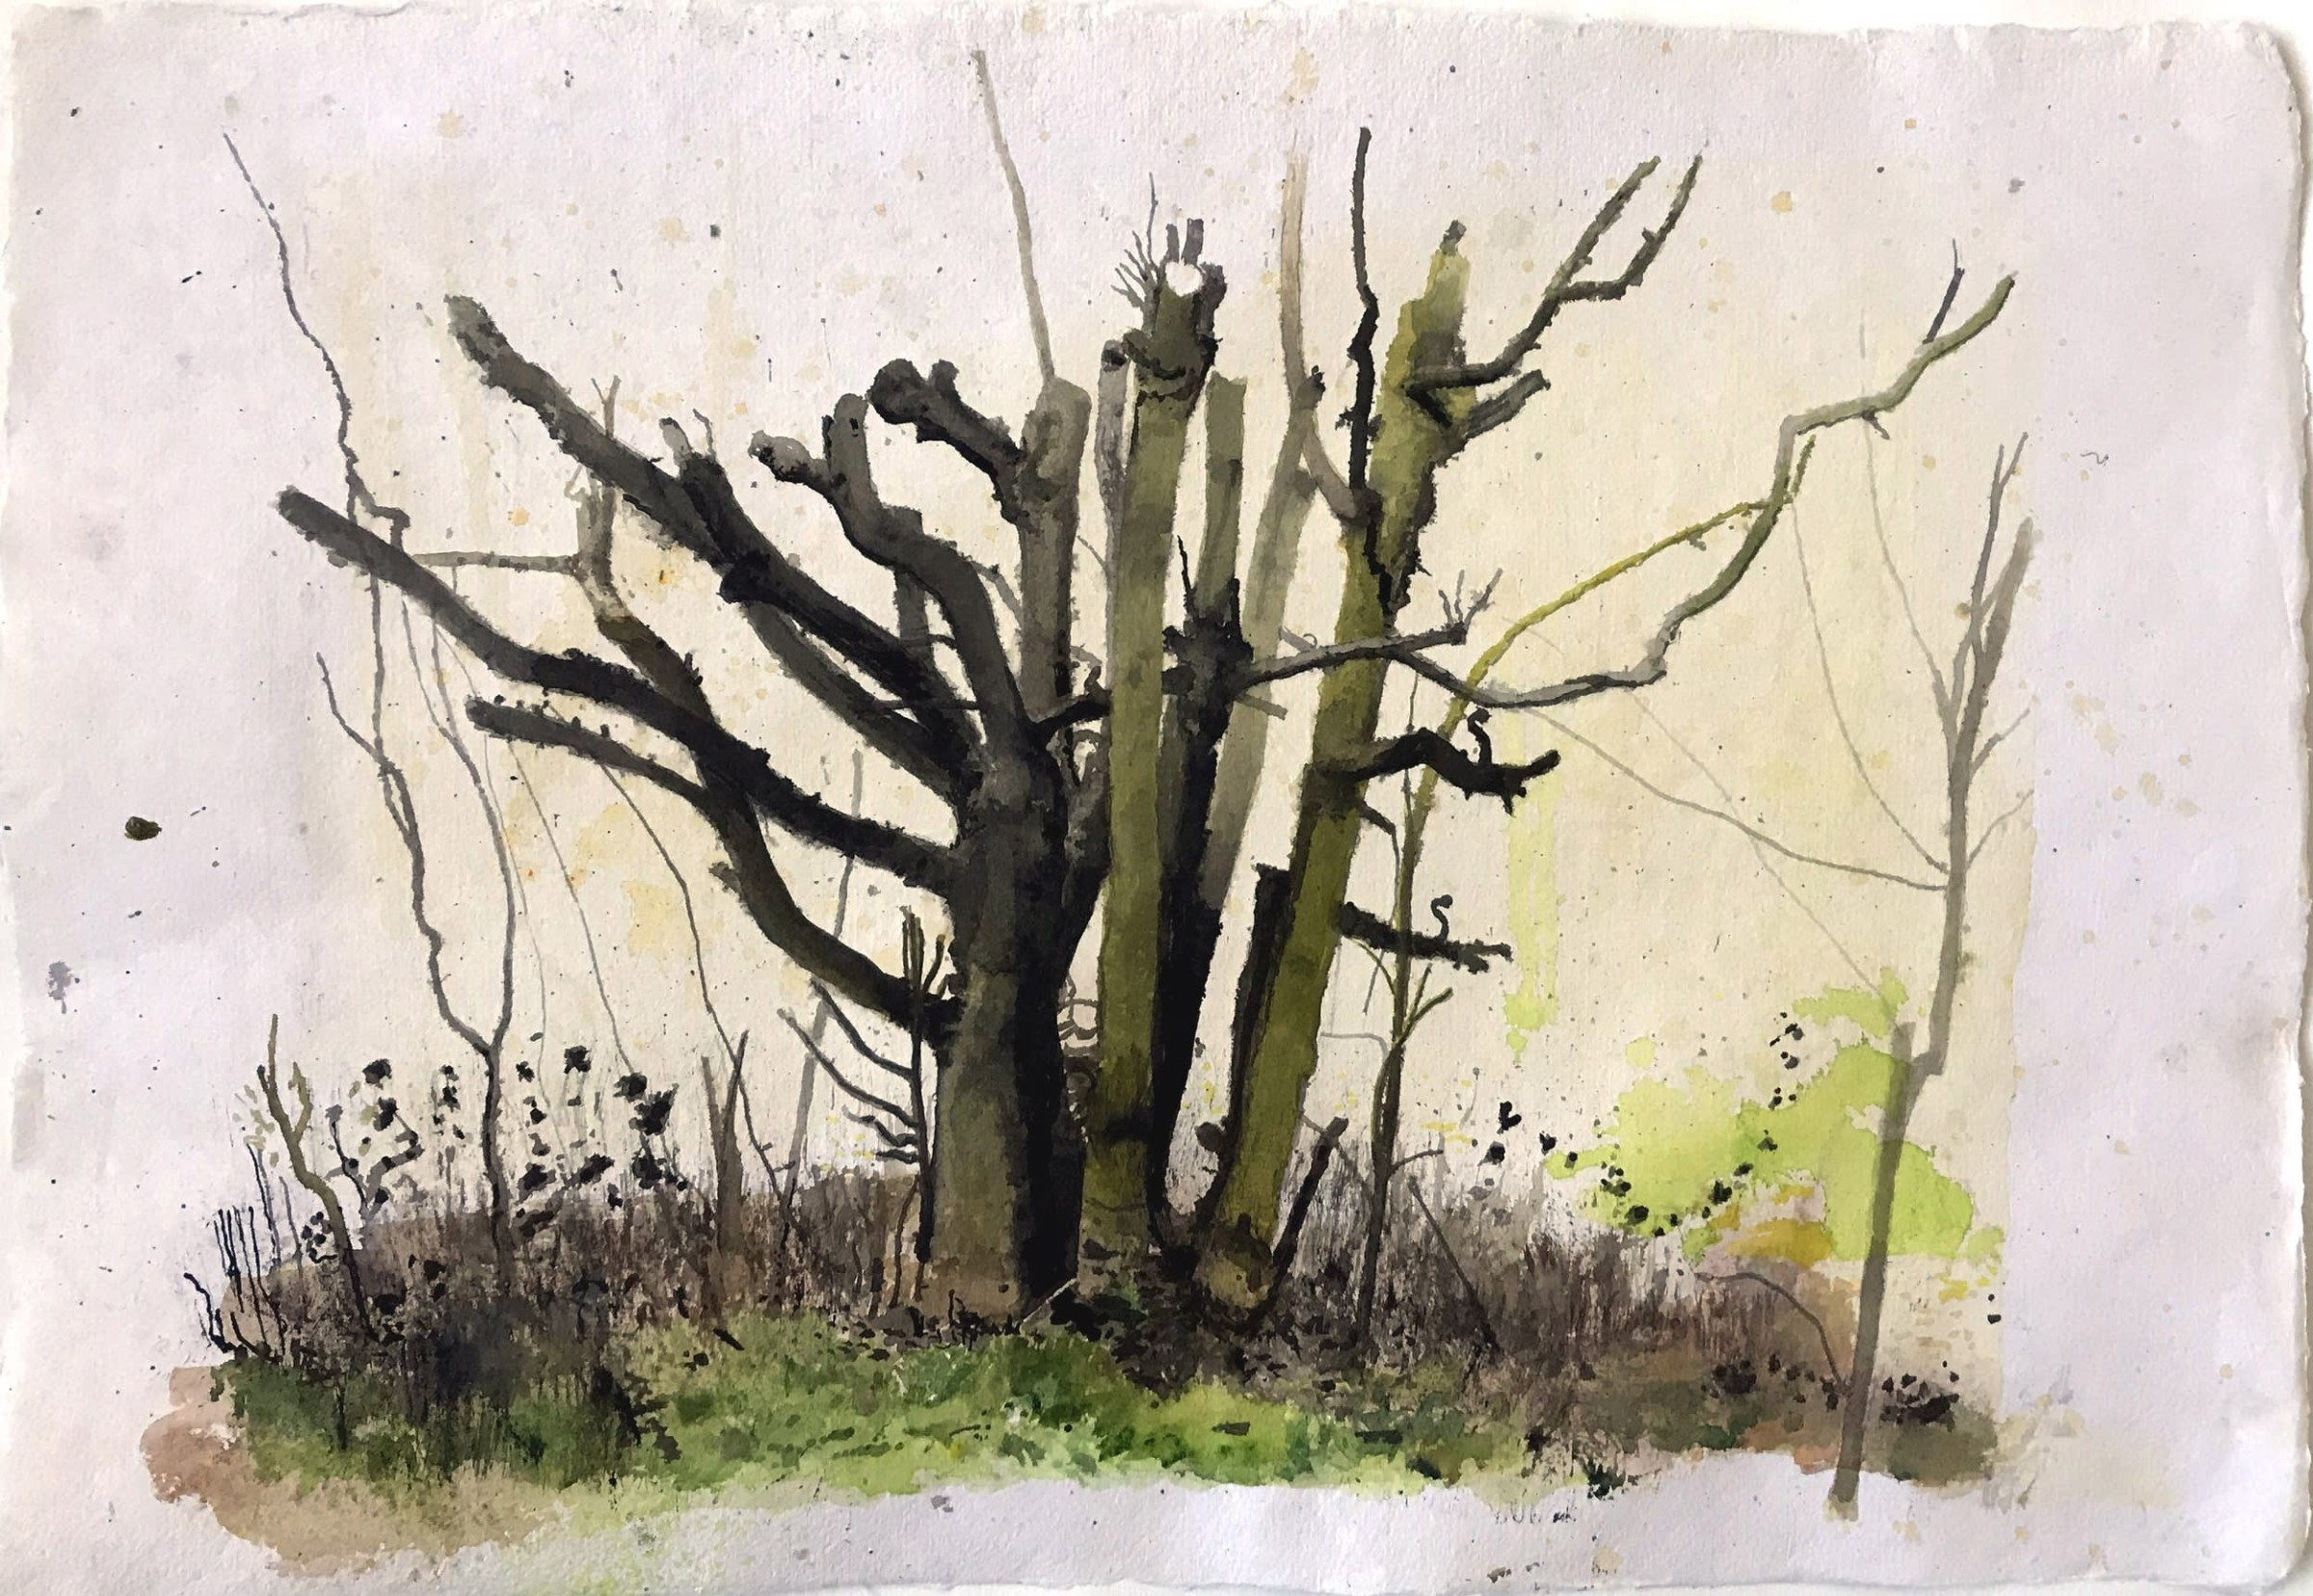 """<span class=""""link fancybox-details-link""""><a href=""""/artists/88-iain-nicholls/works/12122-iain-nicholls-elsecar-cropped-trees-study-3/"""">View Detail Page</a></span><div class=""""artist""""><span class=""""artist""""><strong>Iain Nicholls</strong></span></div><div class=""""title""""><em>Elsecar Cropped Trees Study 3</em></div><div class=""""medium"""">watercolour on paper mounted on board</div><div class=""""dimensions"""">Frame: 42 x 60 cm<br /> Artwork: 38 x 55 cm</div><div class=""""price"""">£420.00</div>"""